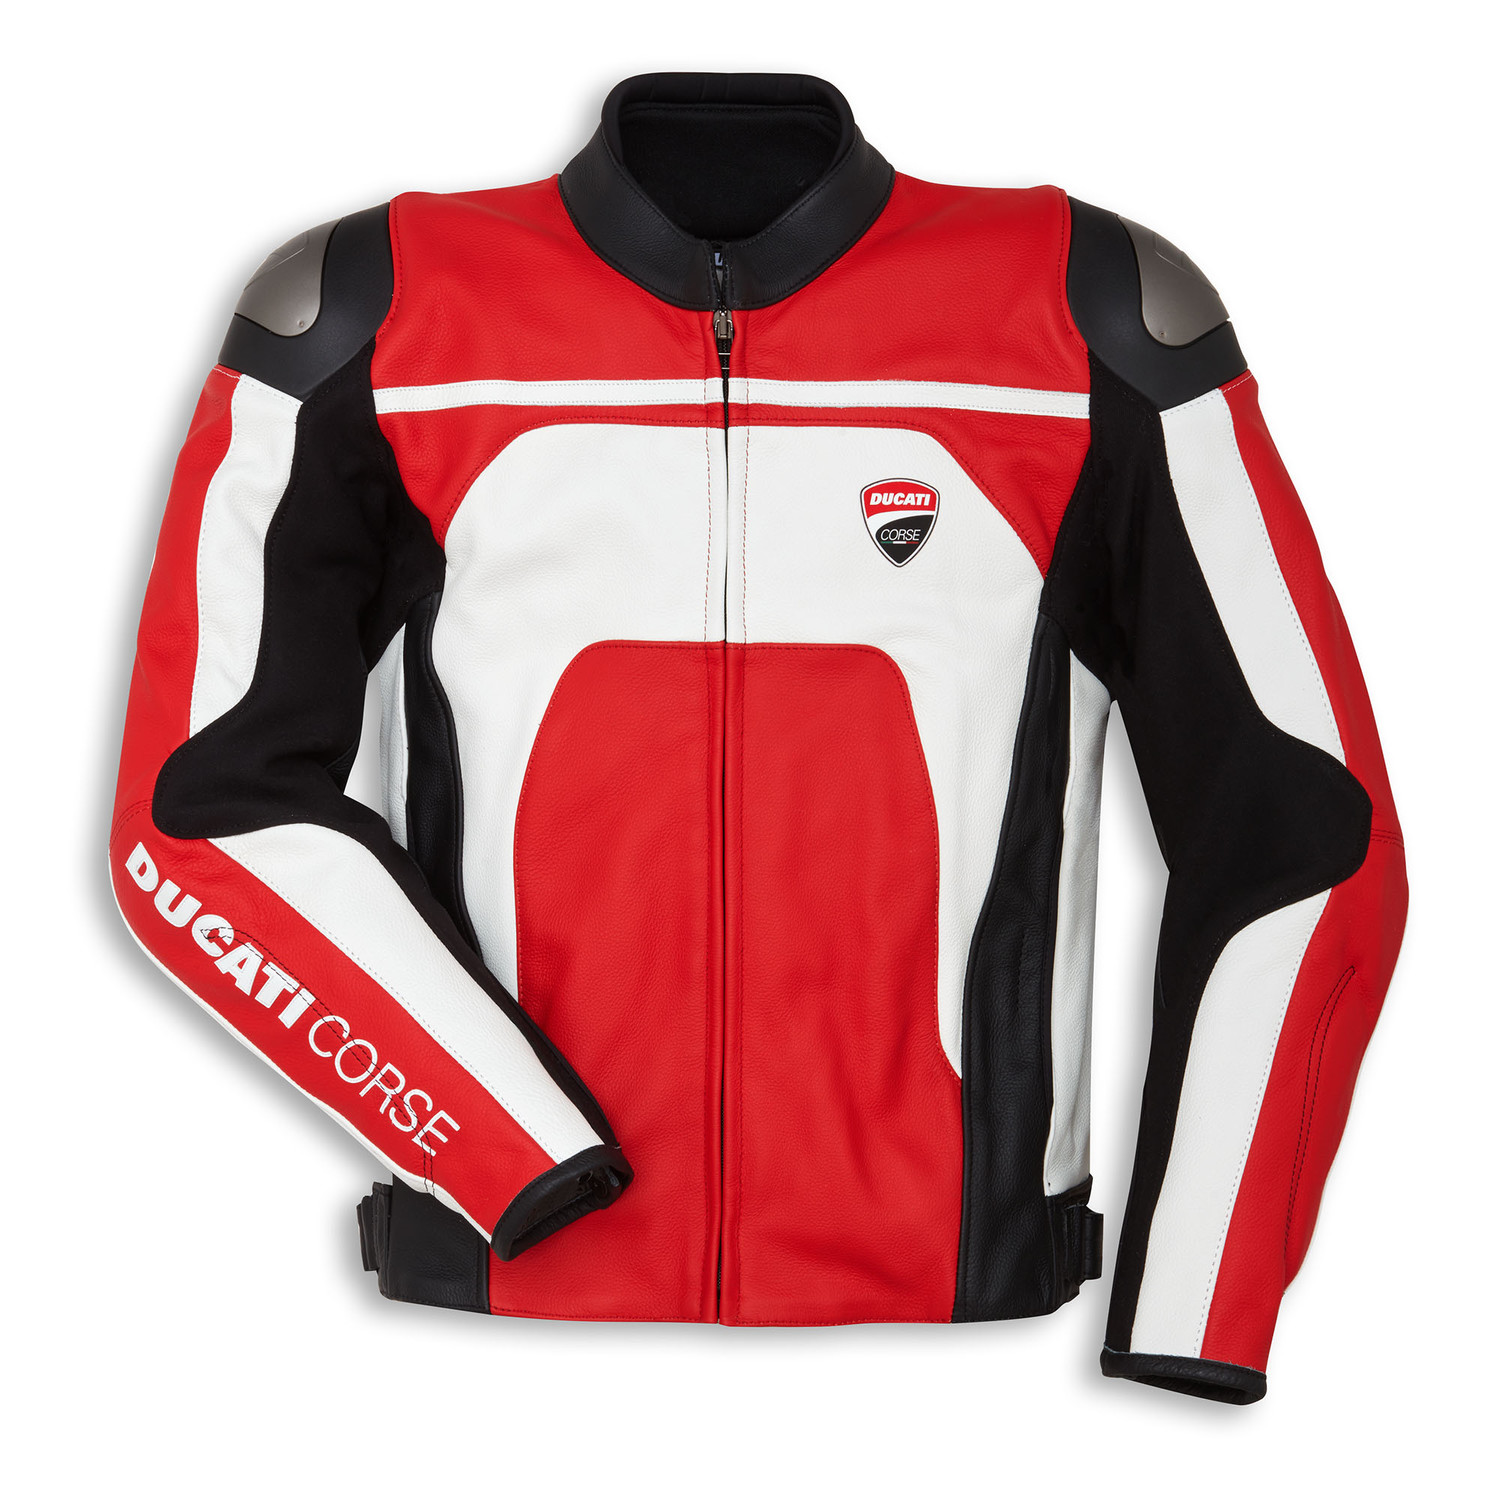 Ducati Corse C4 Leather jacket